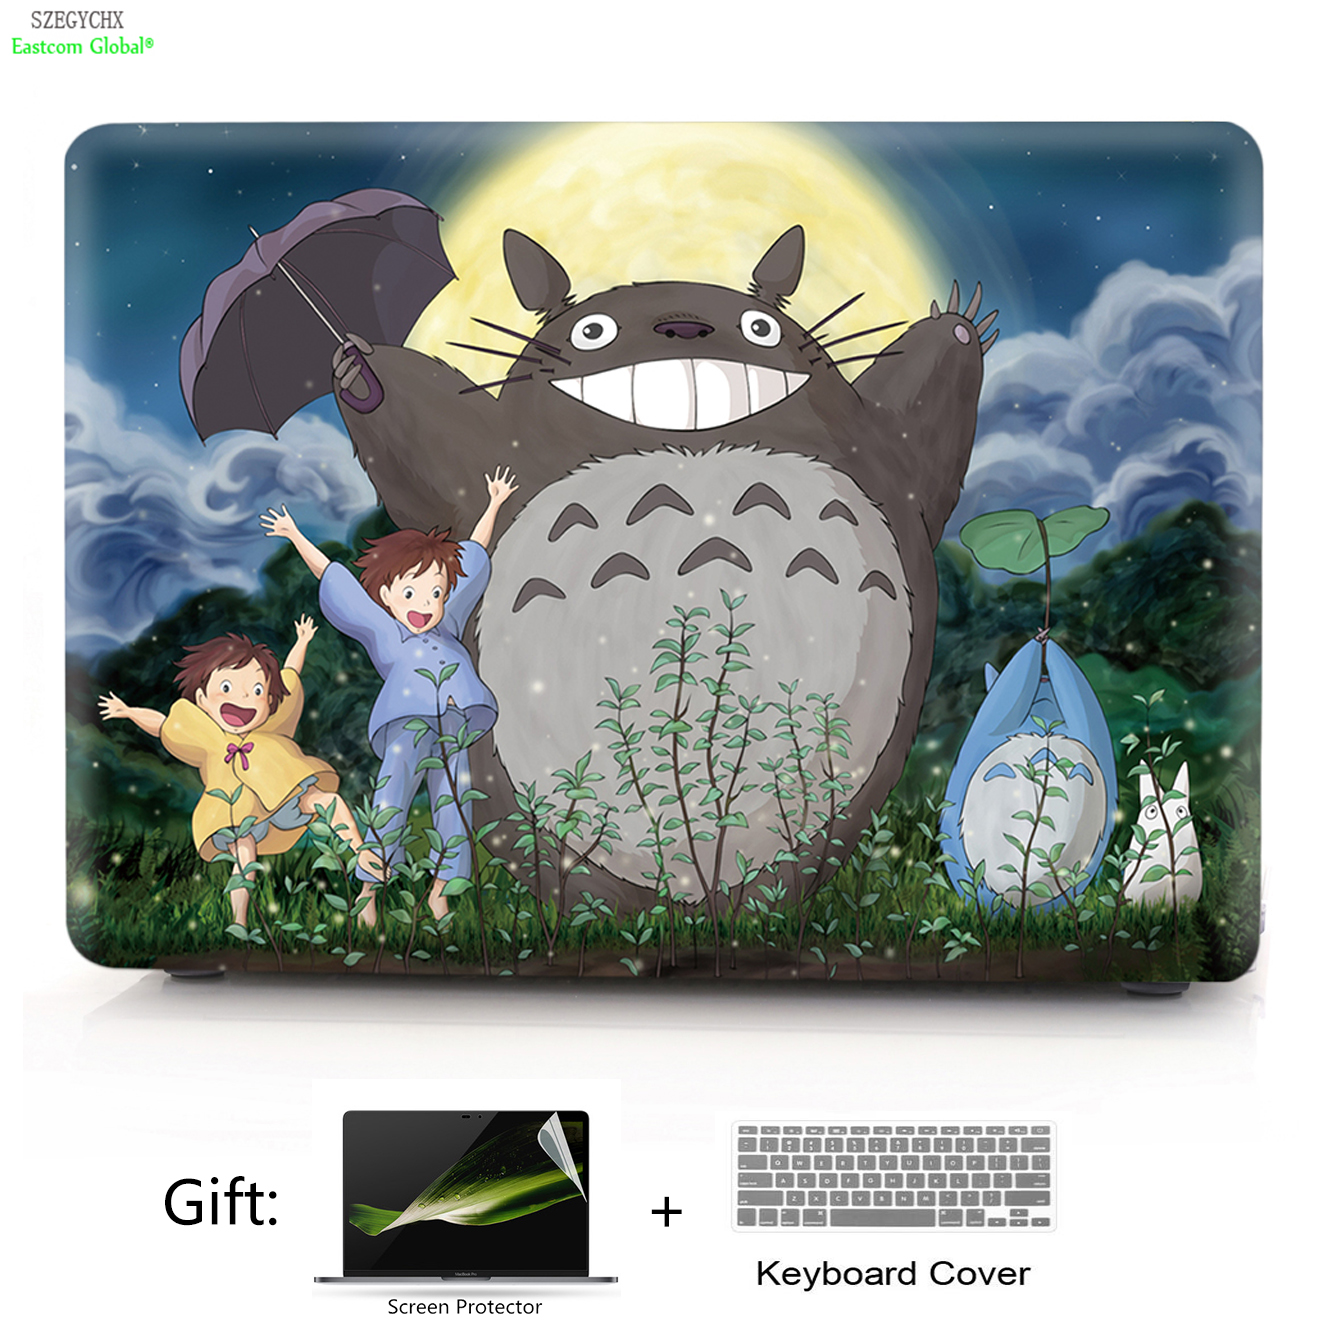 SZEGYCHX Totoro Shell Hard Laptop Case For Macbook Air Pro Retina 11 12 13 15 13.3 inch with Touch Bar Protective cover A1706 hat prince protective hard case for macbook pro 15 4 inch with retina display